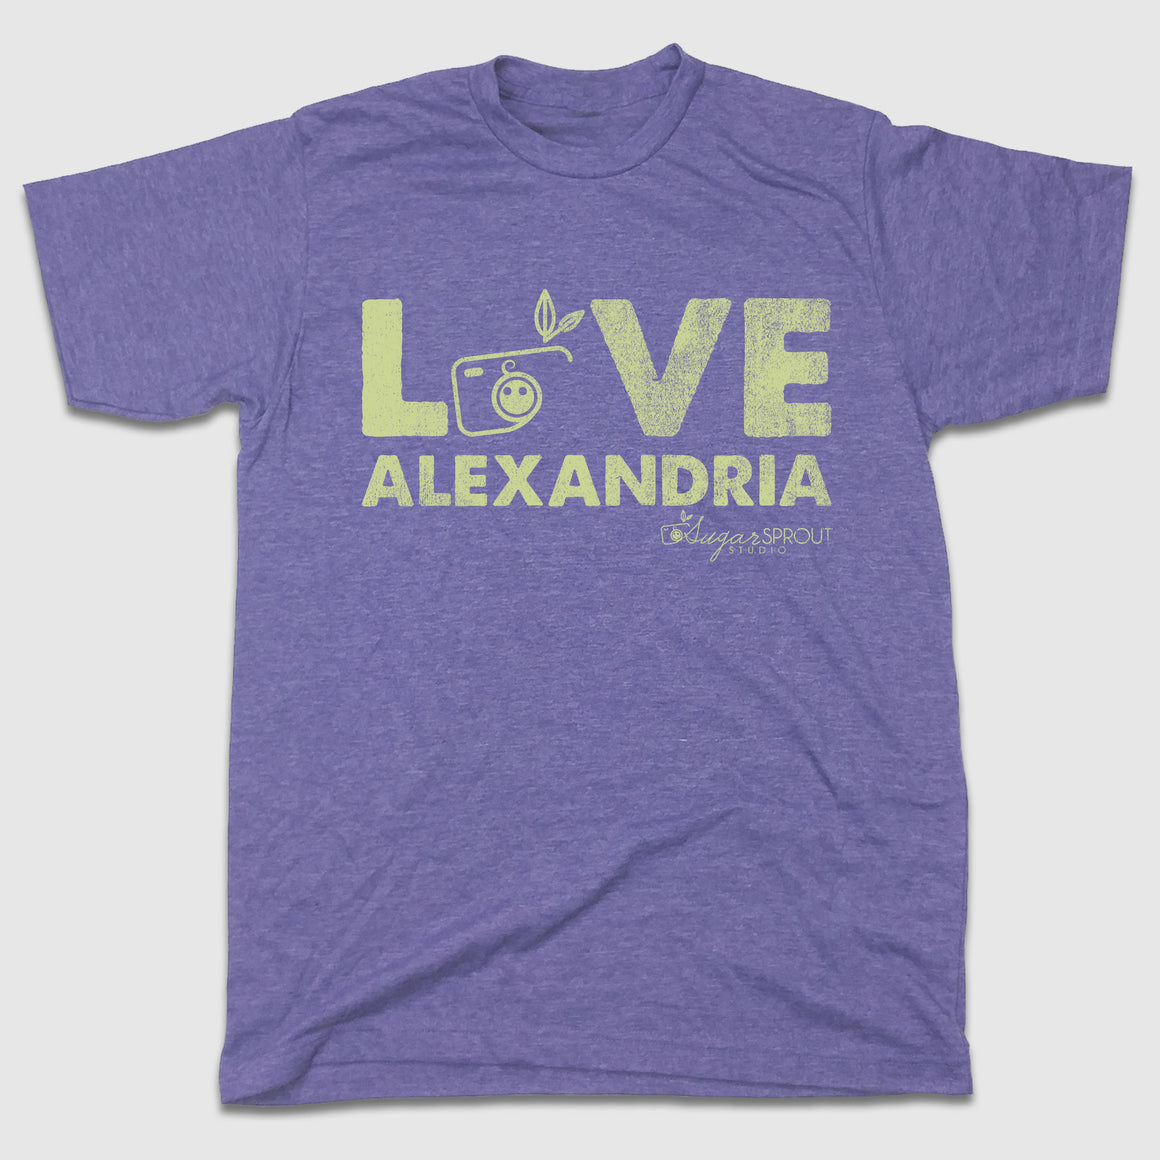 Love Alexandria - Sugar Sprout Studio T-shirt